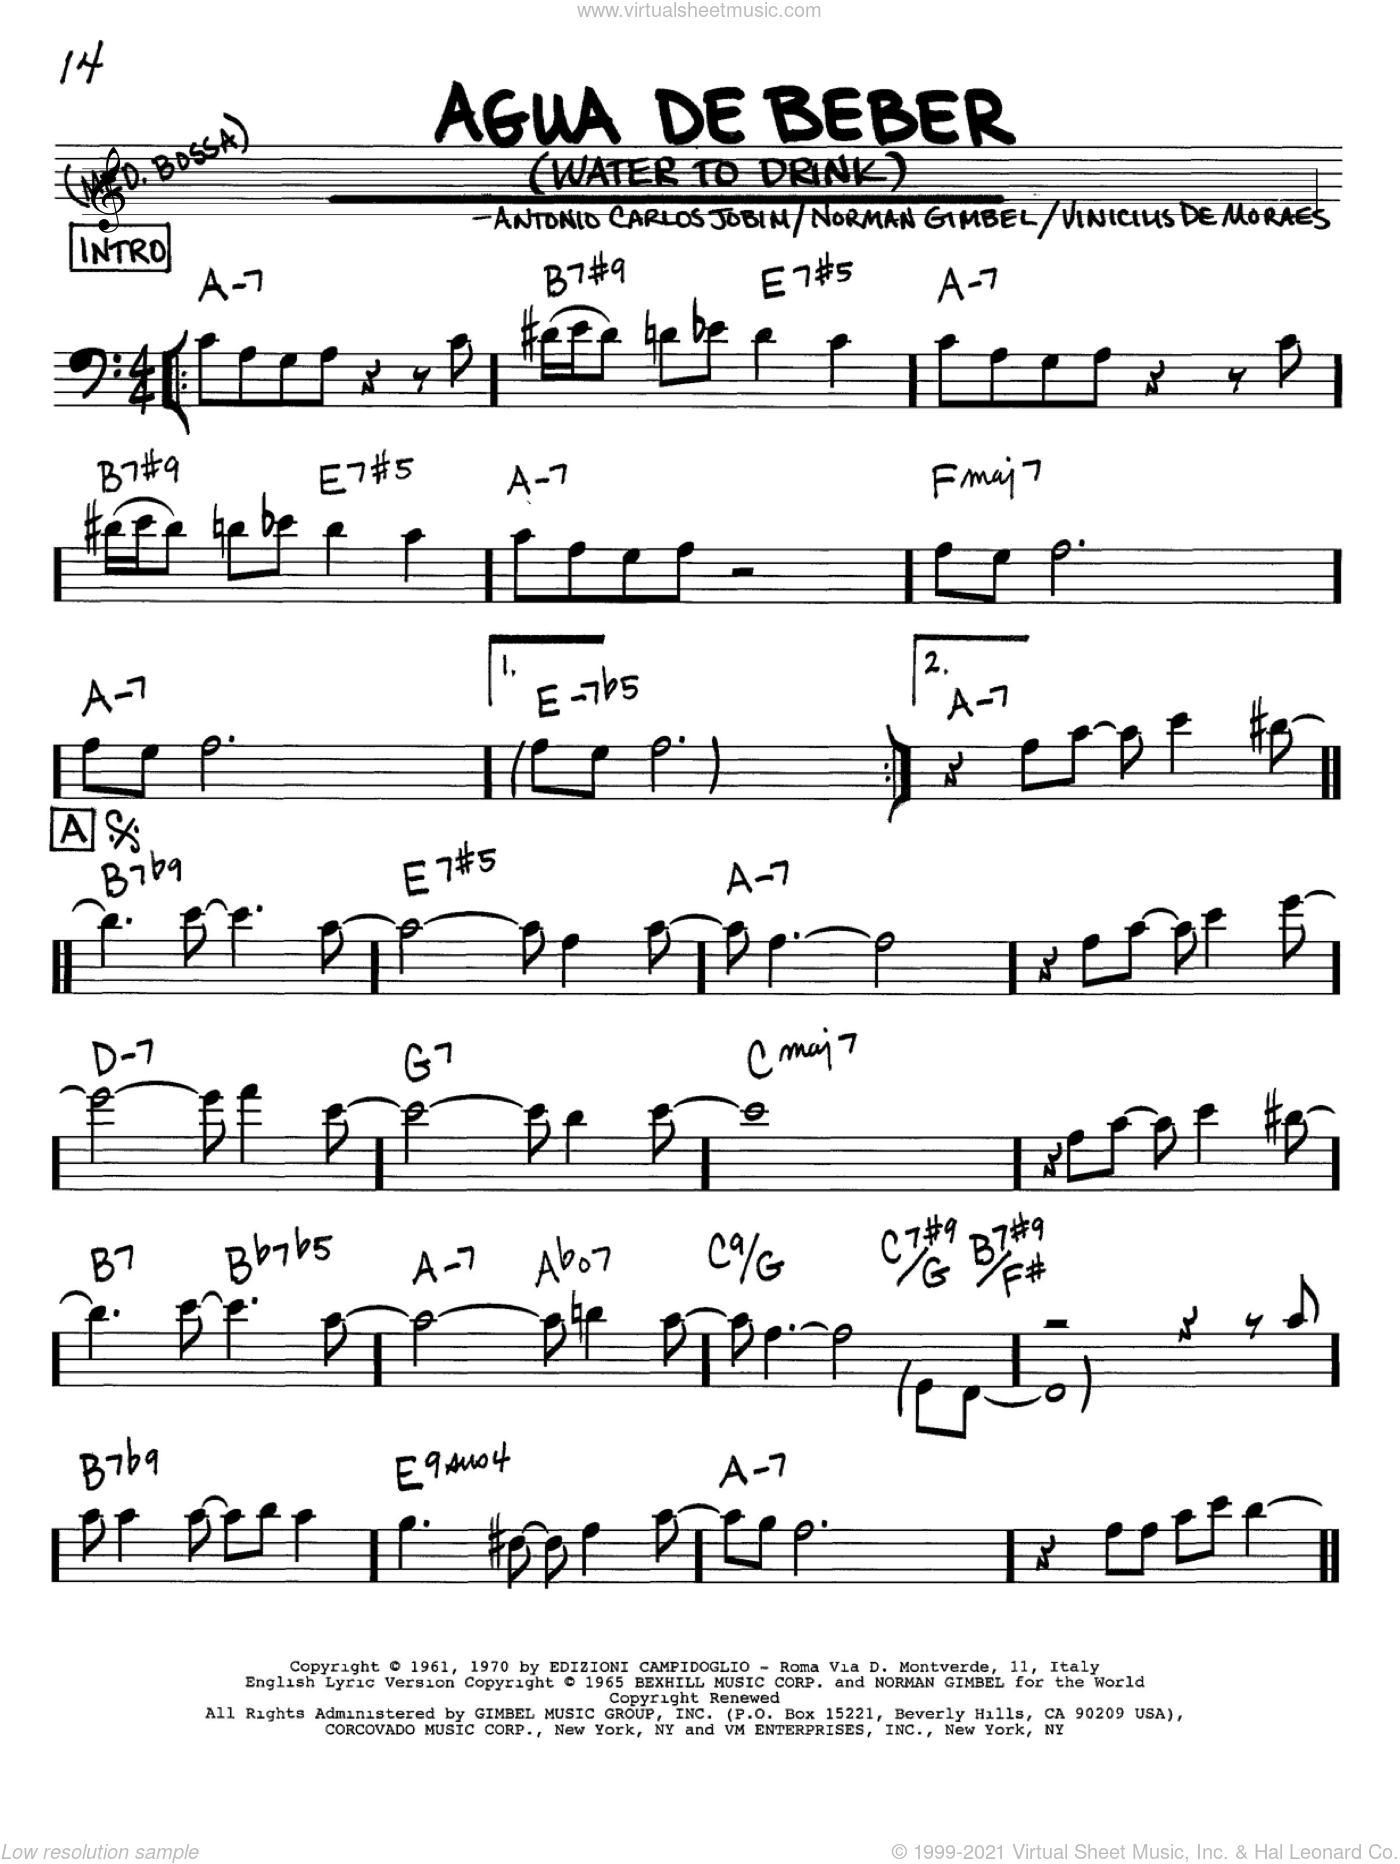 Agua De Beber (Water To Drink) sheet music for voice and other instruments (Bass Clef ) by Vinicius de Moraes, Antonio Carlos Jobim and Norman Gimbel. Score Image Preview.